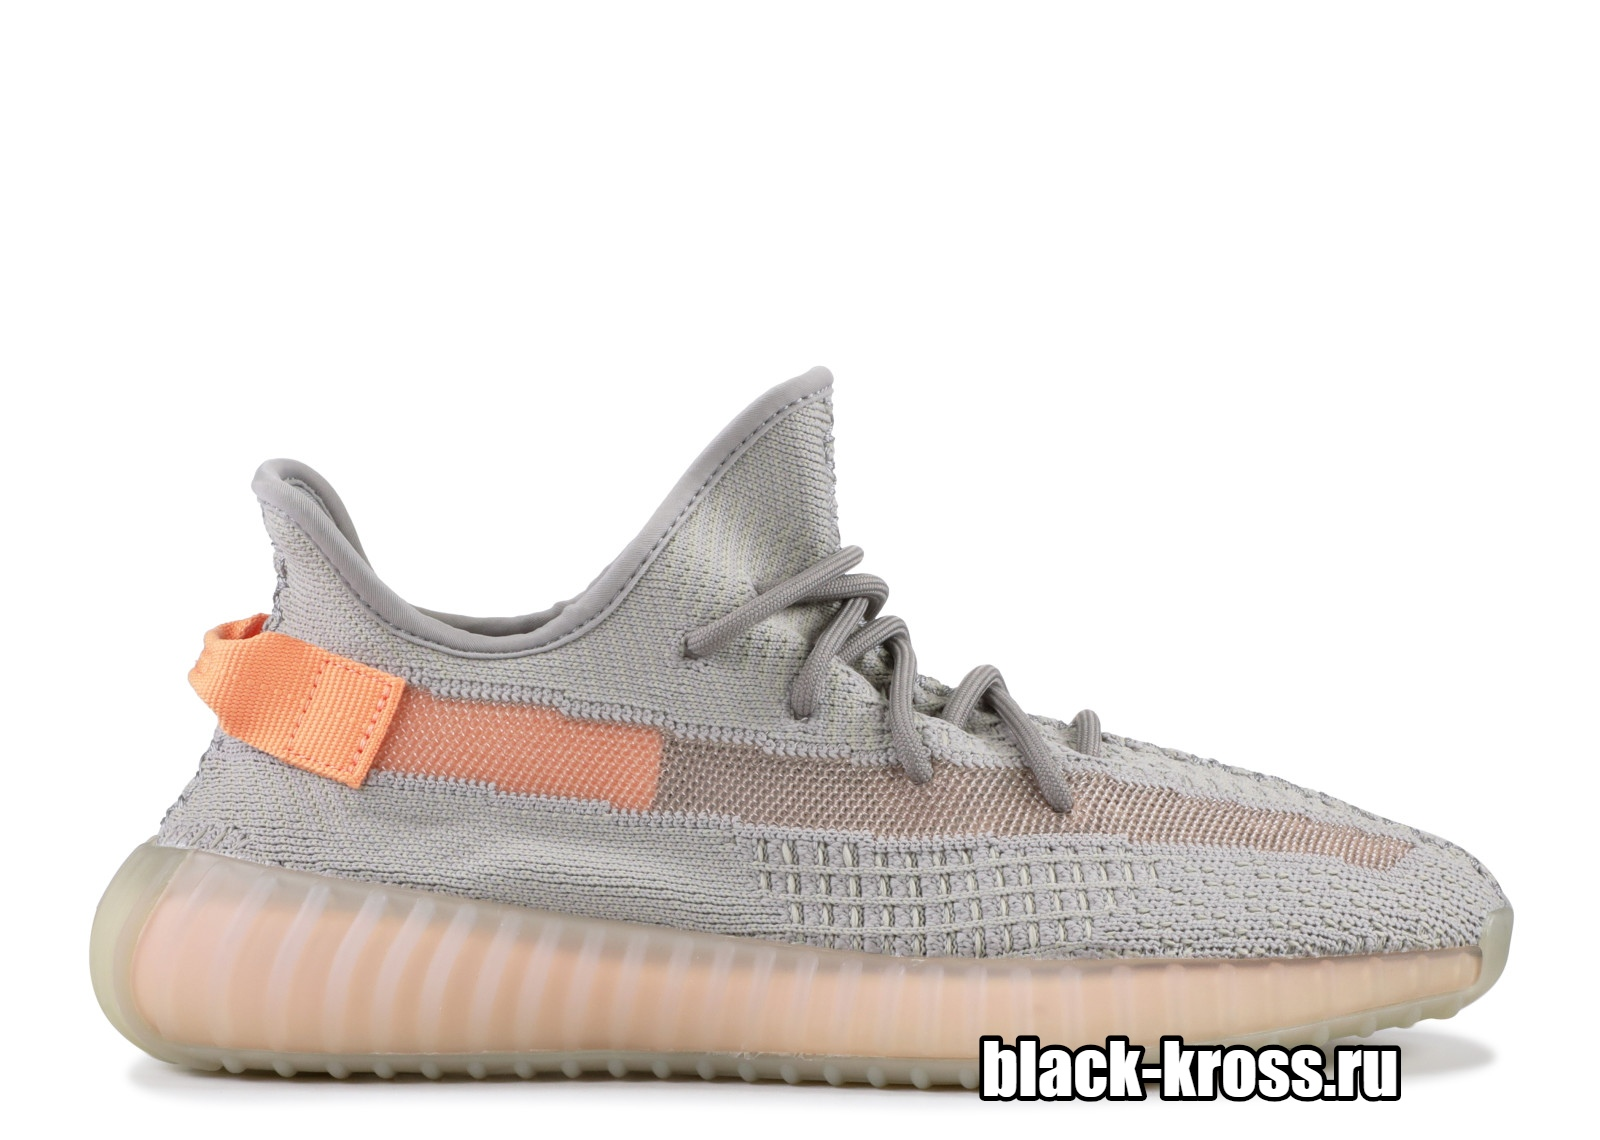 Adidas Originals Yeezy Boost 350 v2 True Form (36-45)